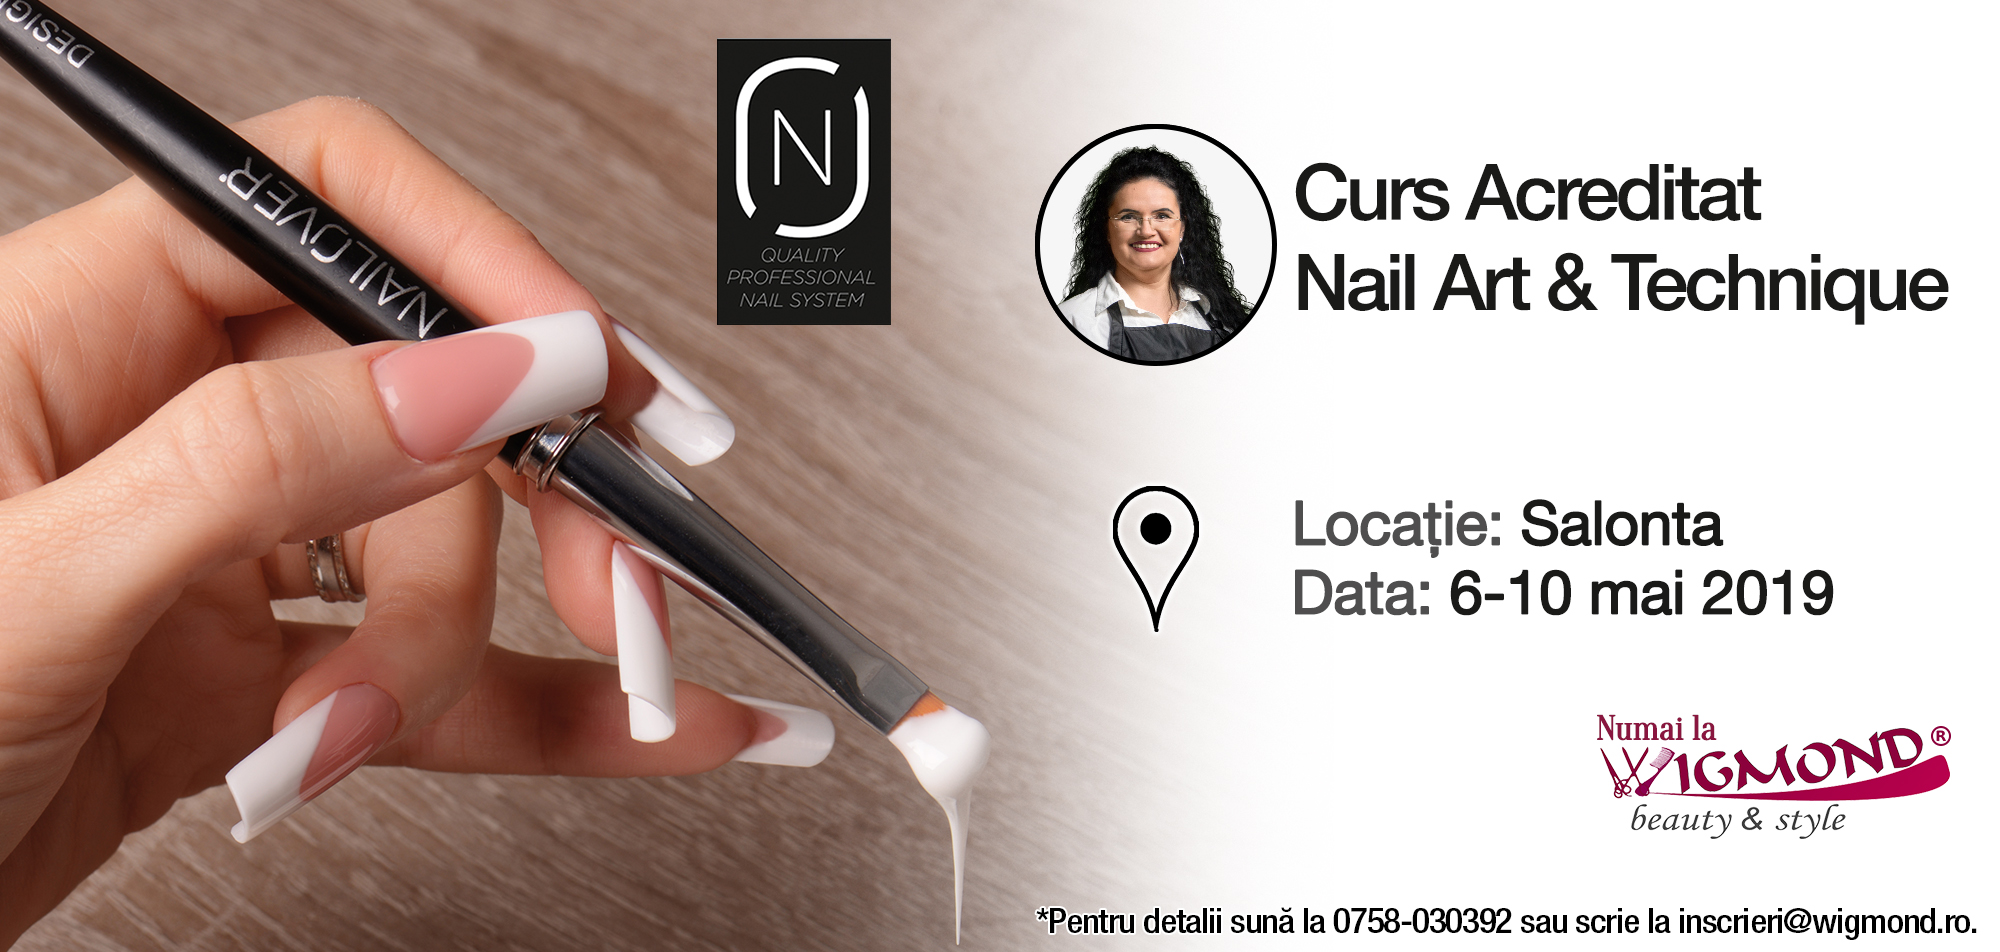 Cursul acreditat nail art Nailover 6-10 mai 2019